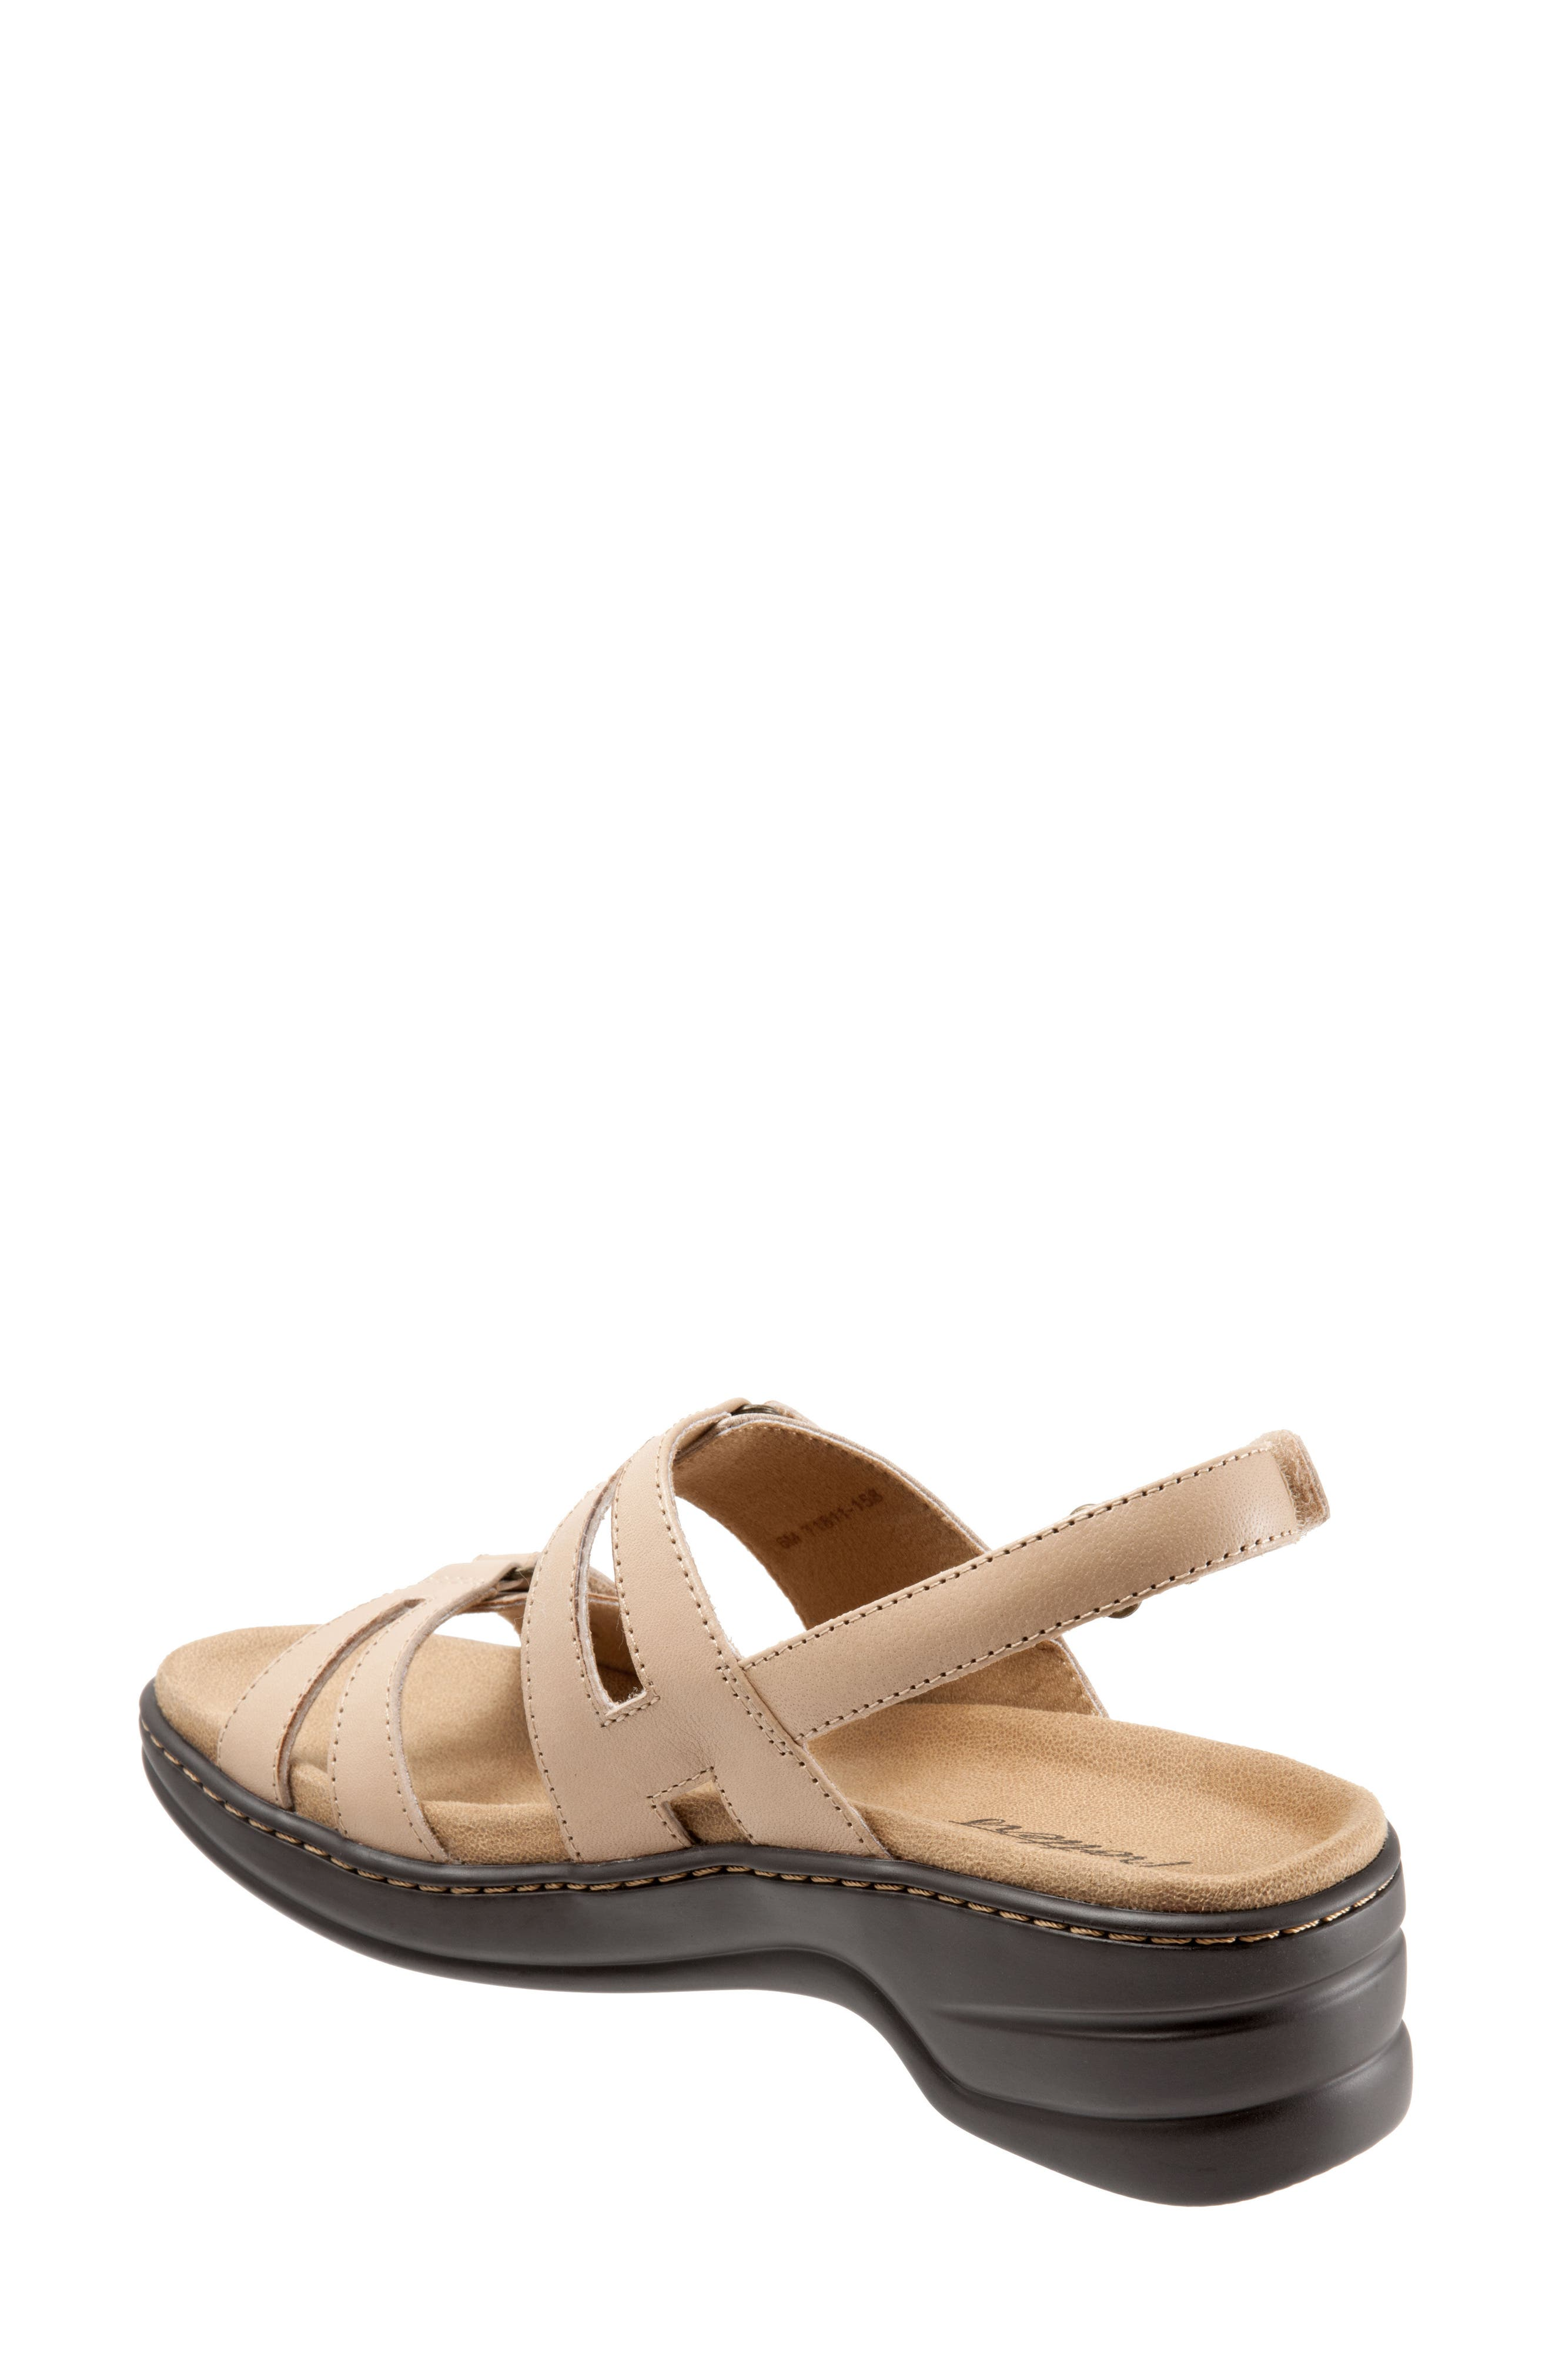 Newton Sandal,                             Alternate thumbnail 2, color,                             Beige/ Off White Leather